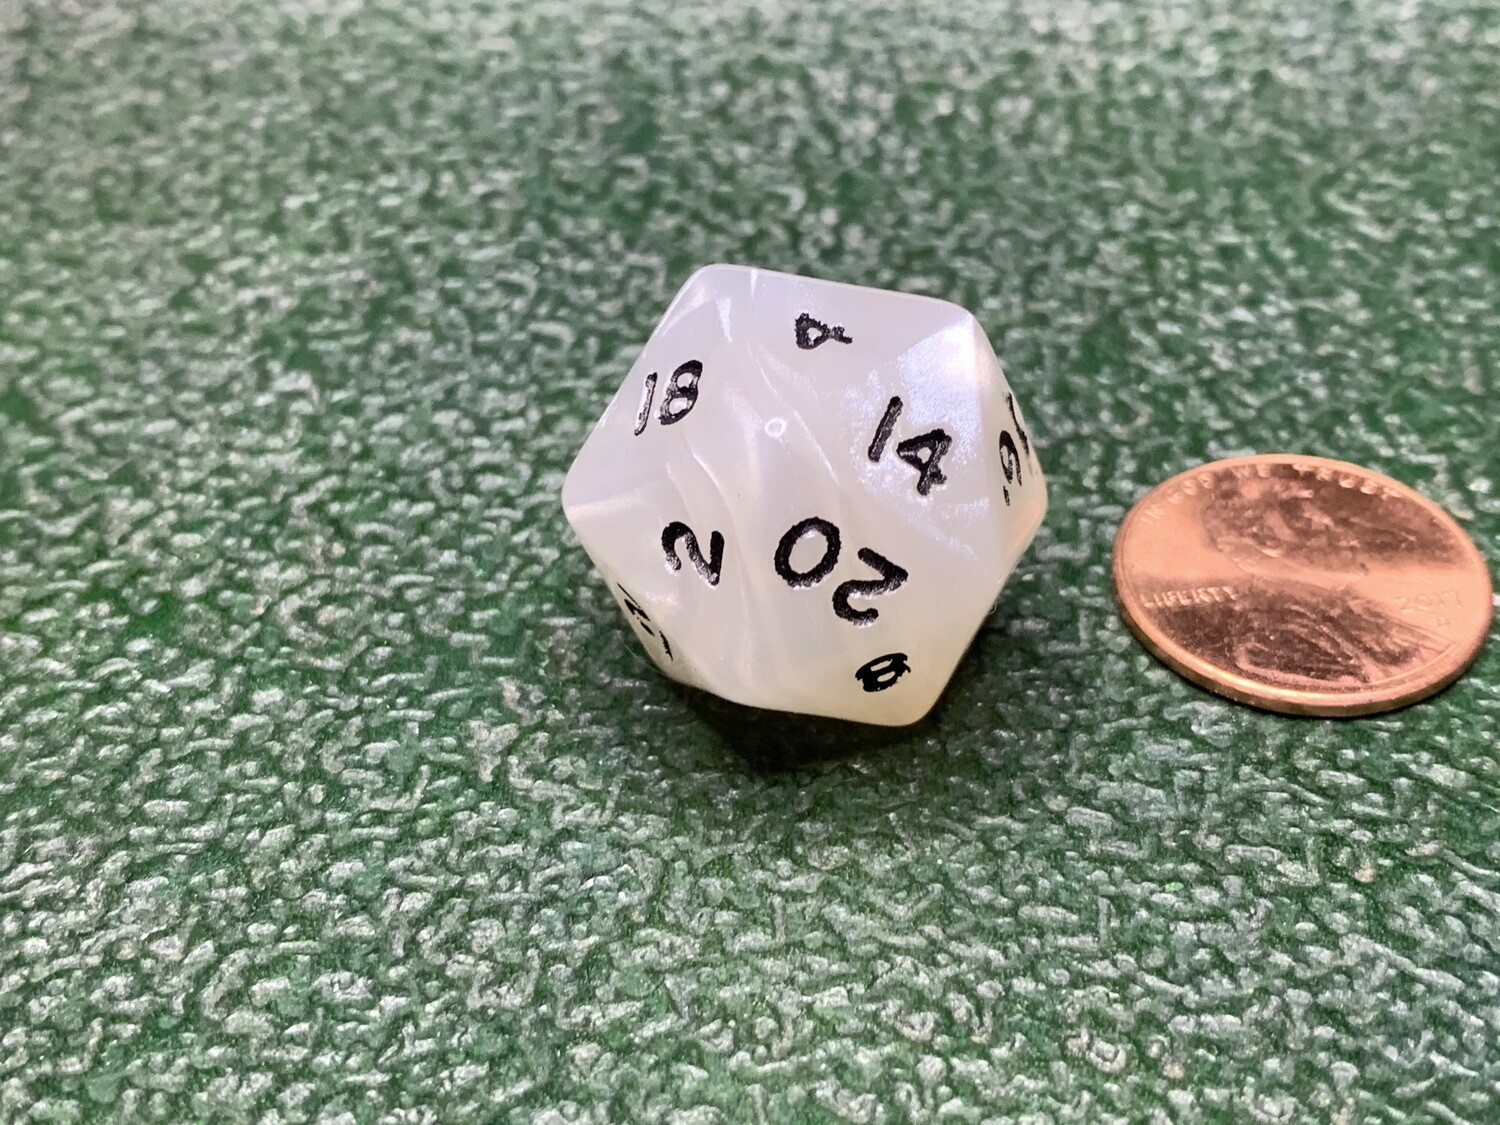 D20 (Twenty Sided) Cheat Gag Die - #20 x2 and no #1 - White with Black Dice